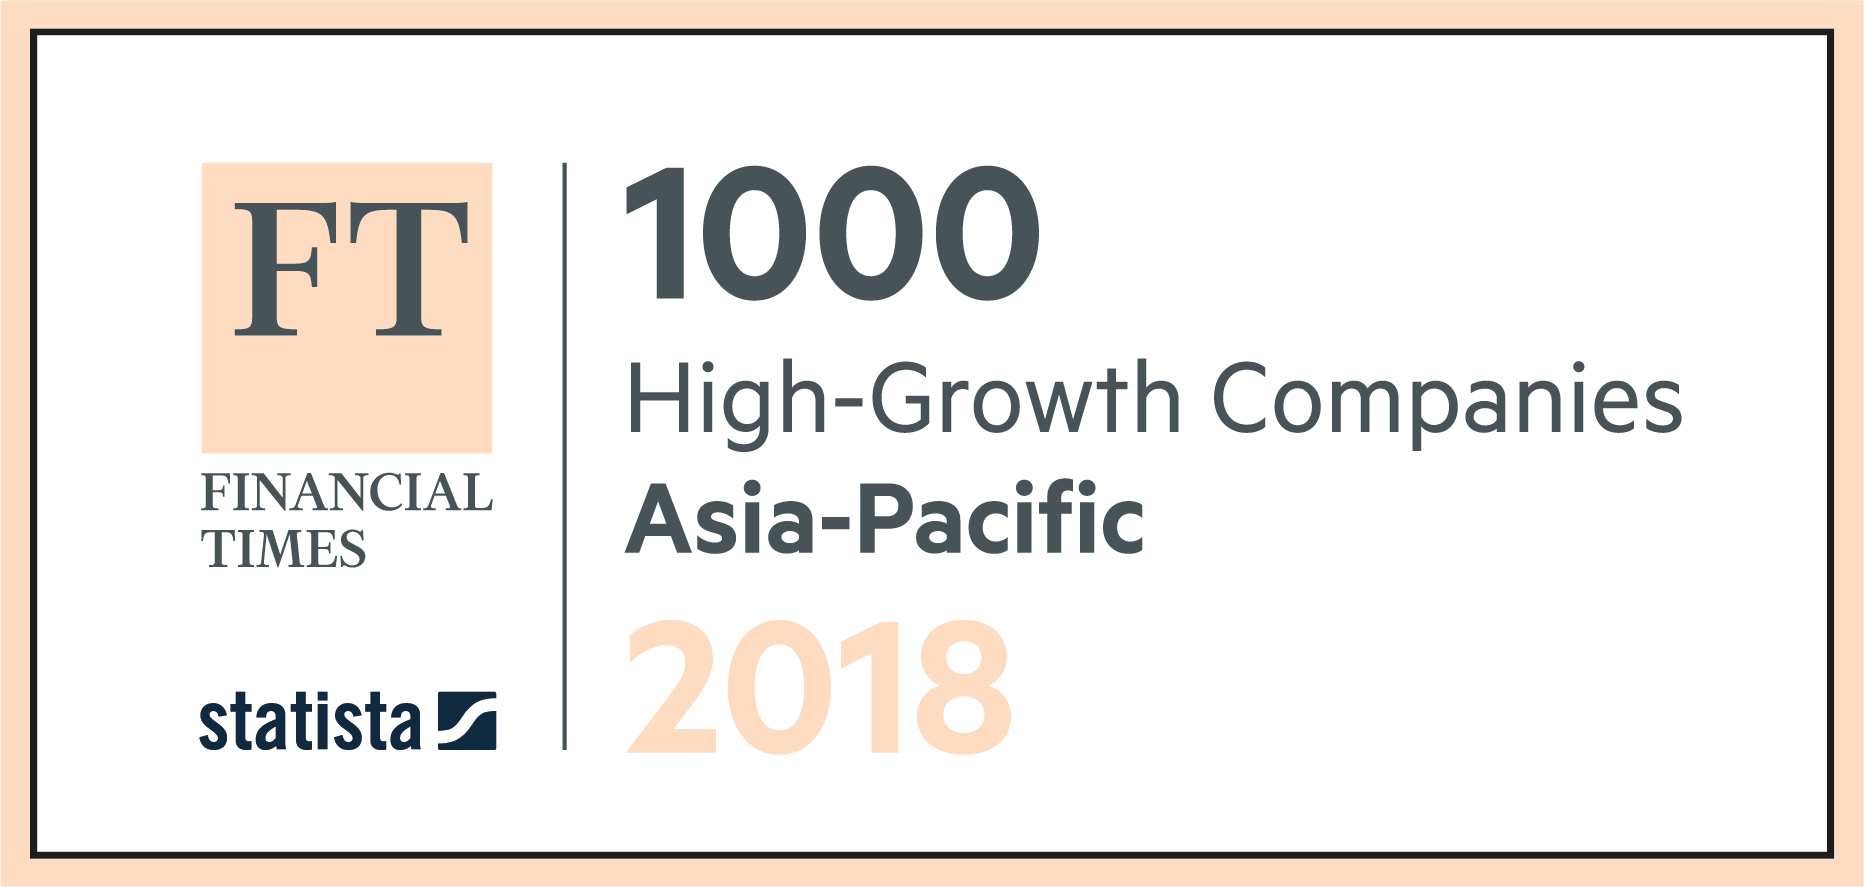 Ft 1000: Highgrowth Companies Asiapacific — Ft for Ft 1000 High-Growth Companies Asia-Pacific